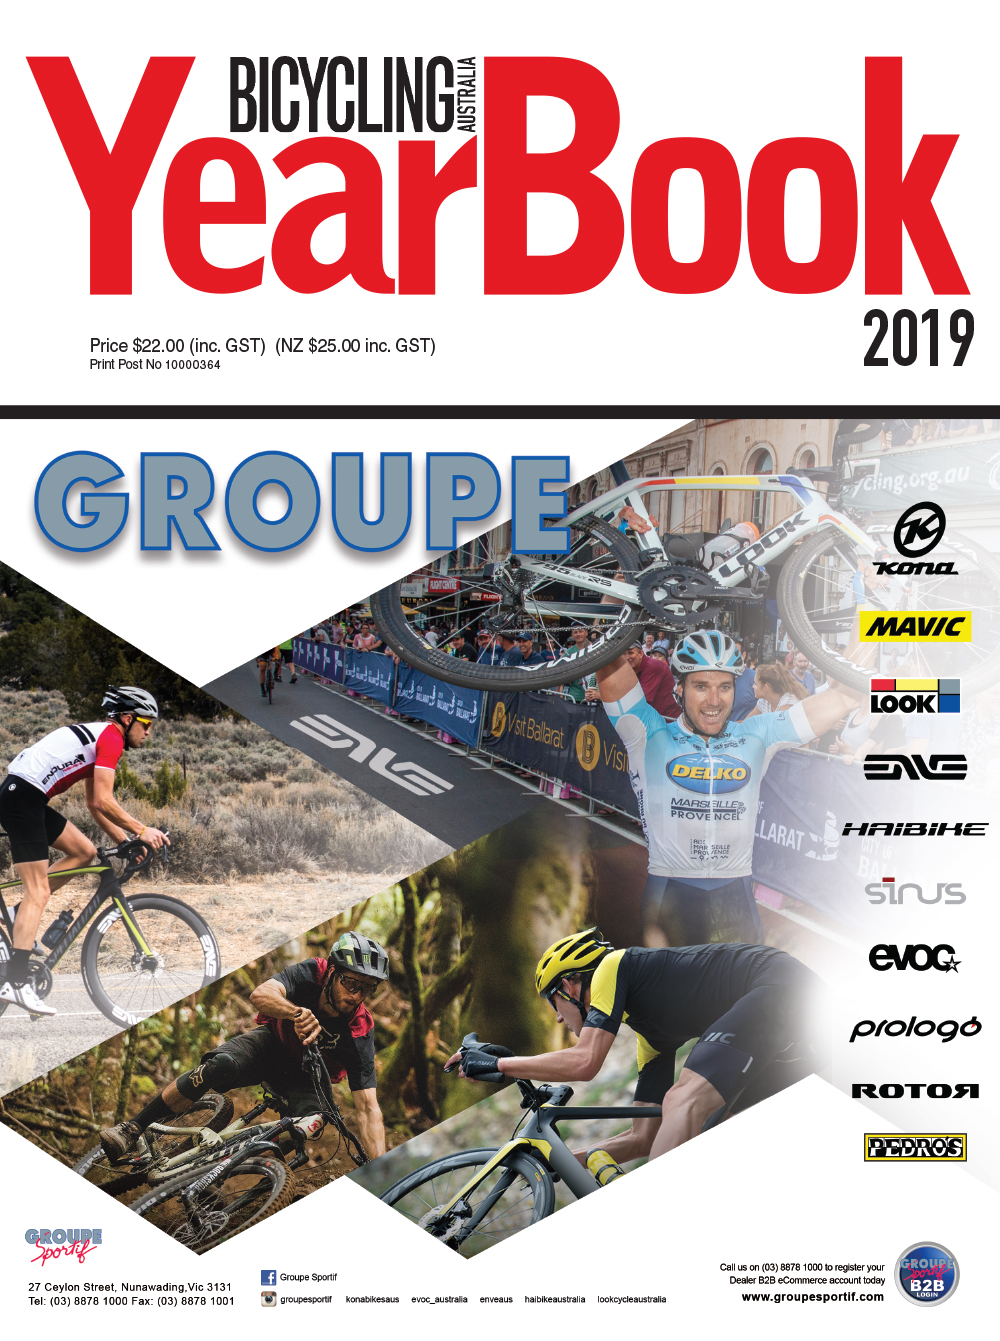 Bicycling Yearbook